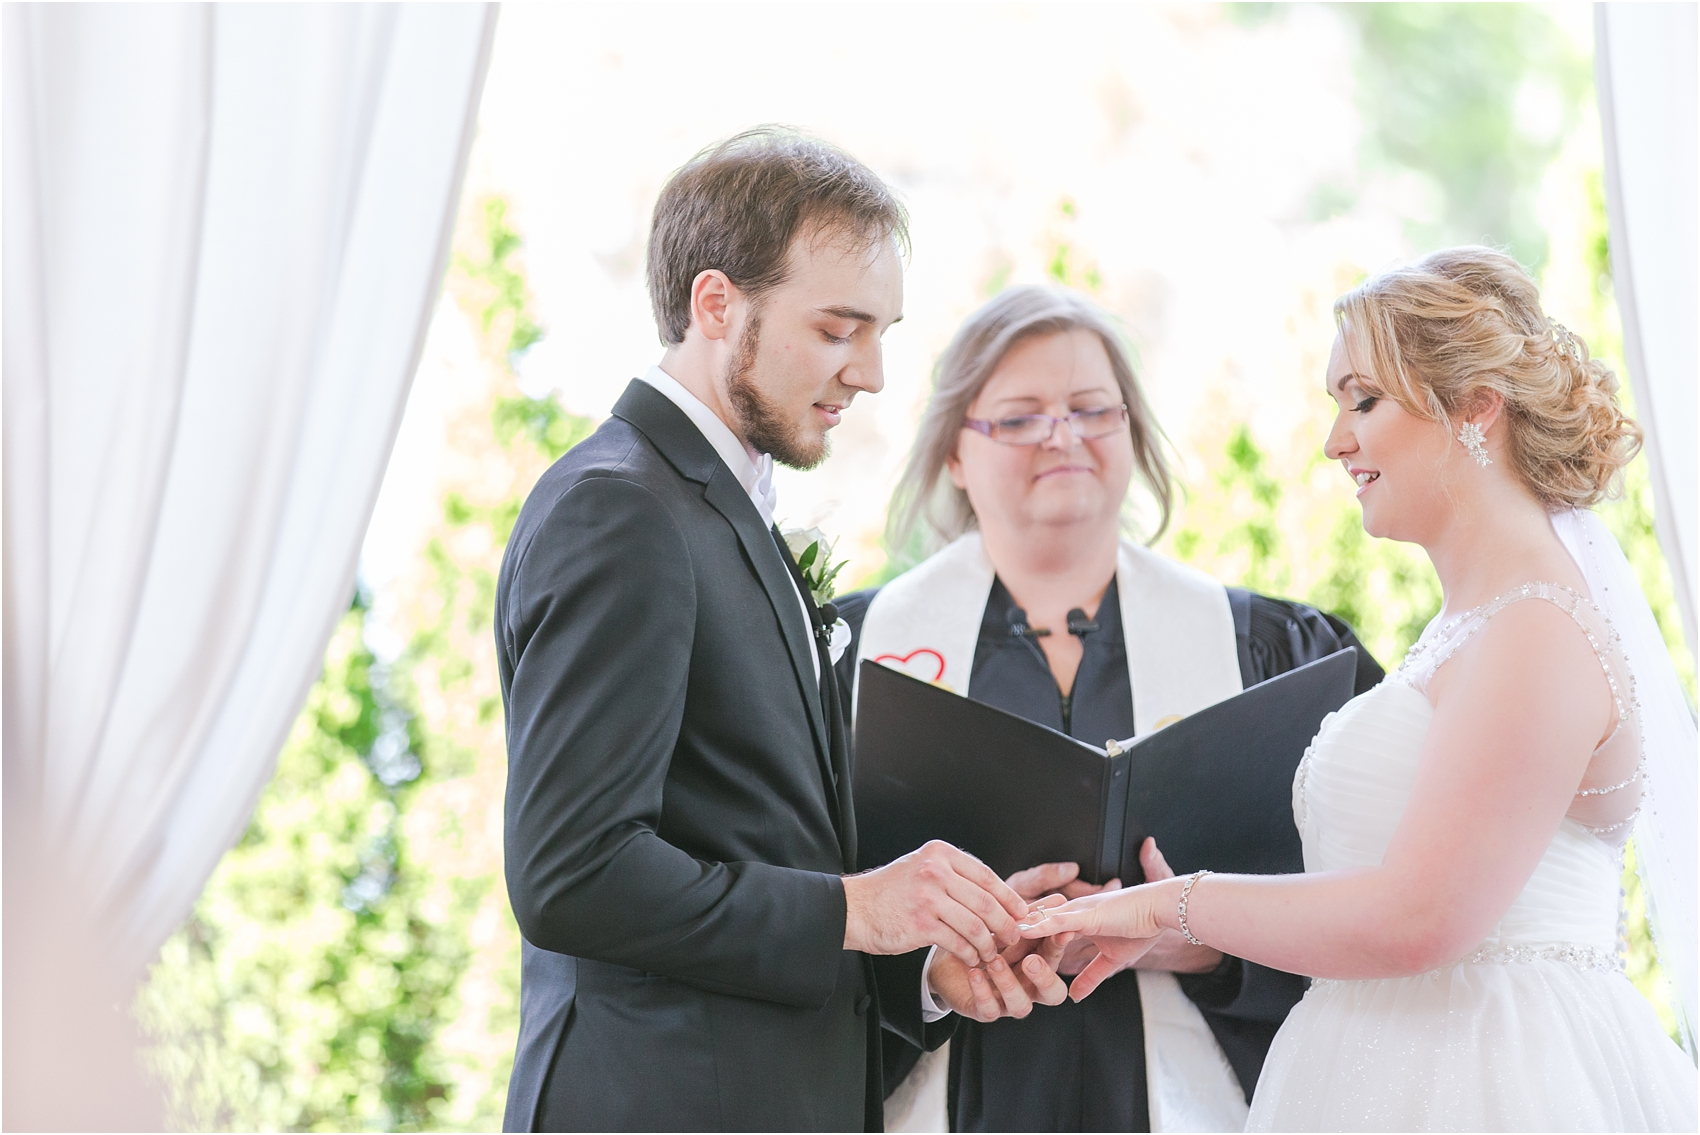 lord-of-the-rings-inspired-wedding-photos-at-crystal-gardens-in-howell-mi-by-courtney-carolyn-photography_0043.jpg